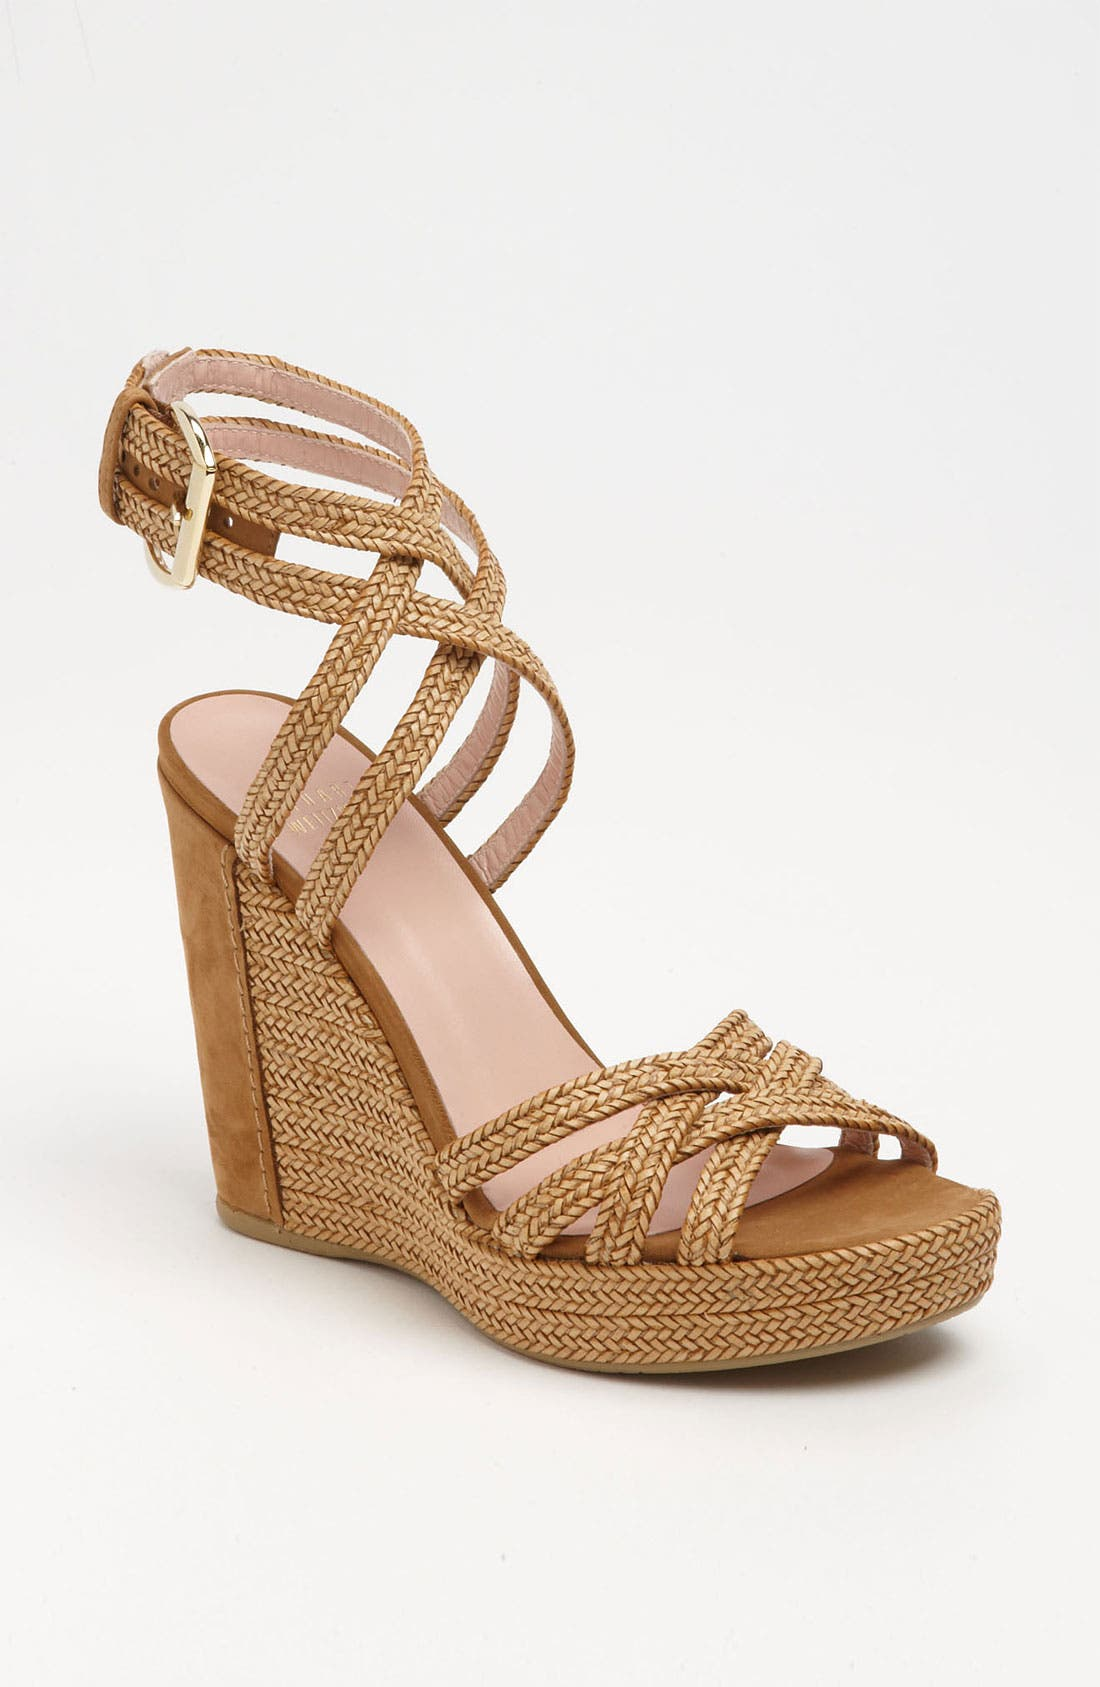 Alternate Image 1 Selected - Stuart Weitzman 'Reins' Sandal